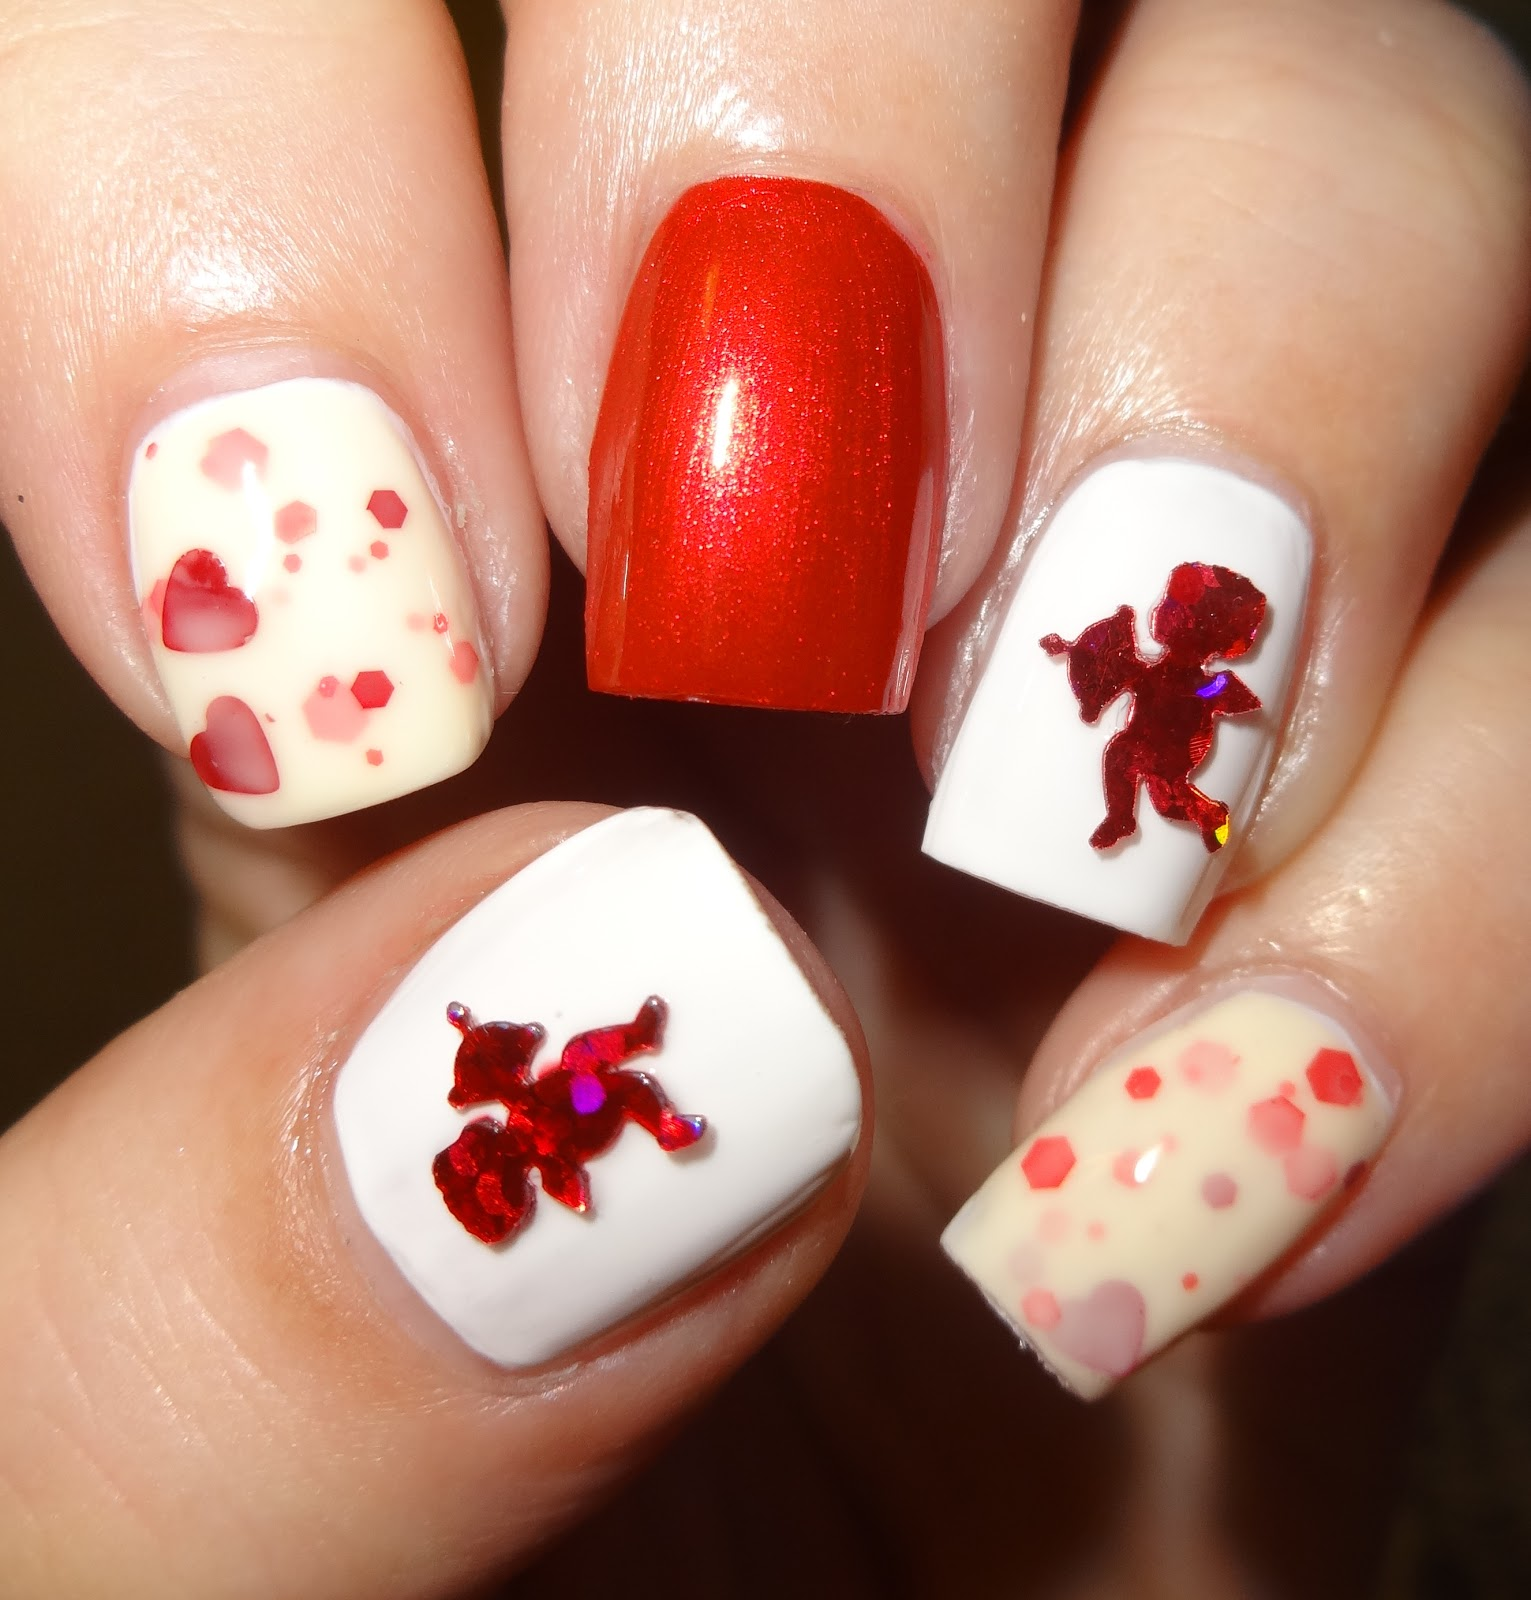 Wendys delights cupid nail art decals from charlies nail art the cupid nail art decals currently cost 099 for a pack of 100 and come in red or black available at charlies nail art who have an huge range of nail prinsesfo Images